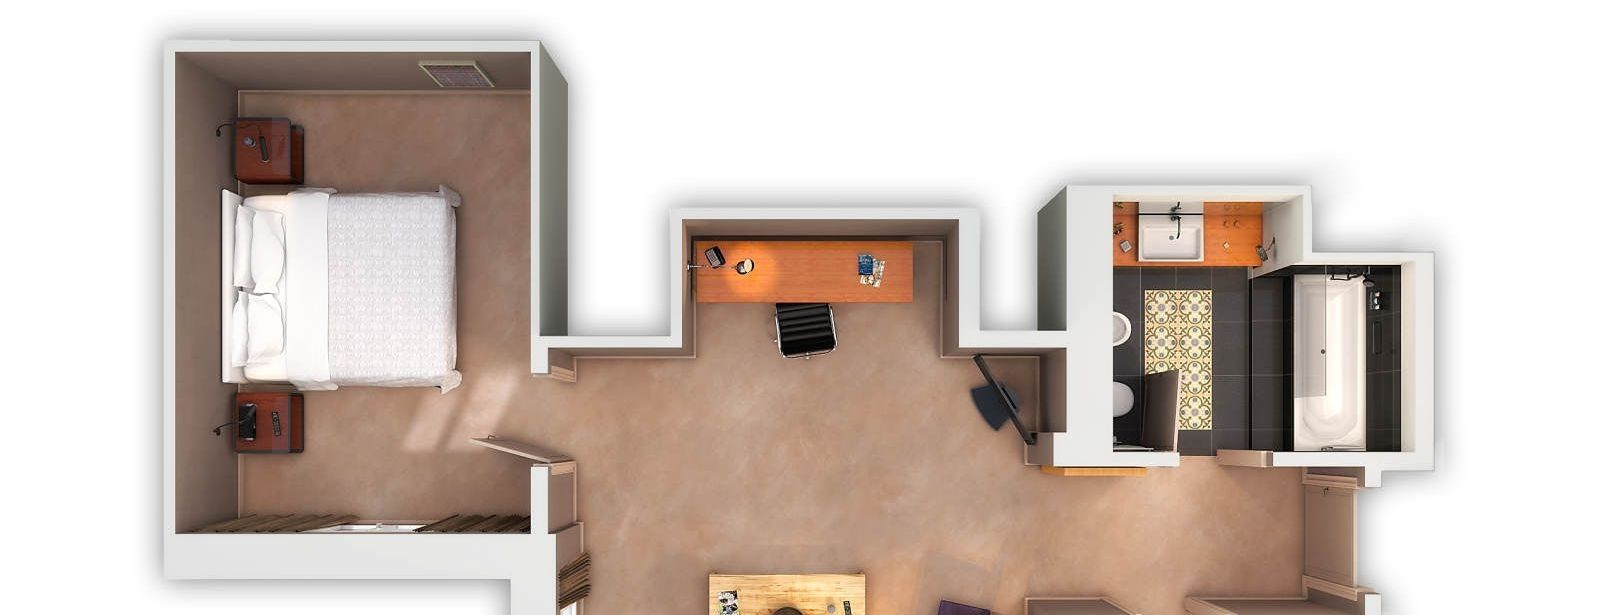 Family Suite floorplan with sofabed